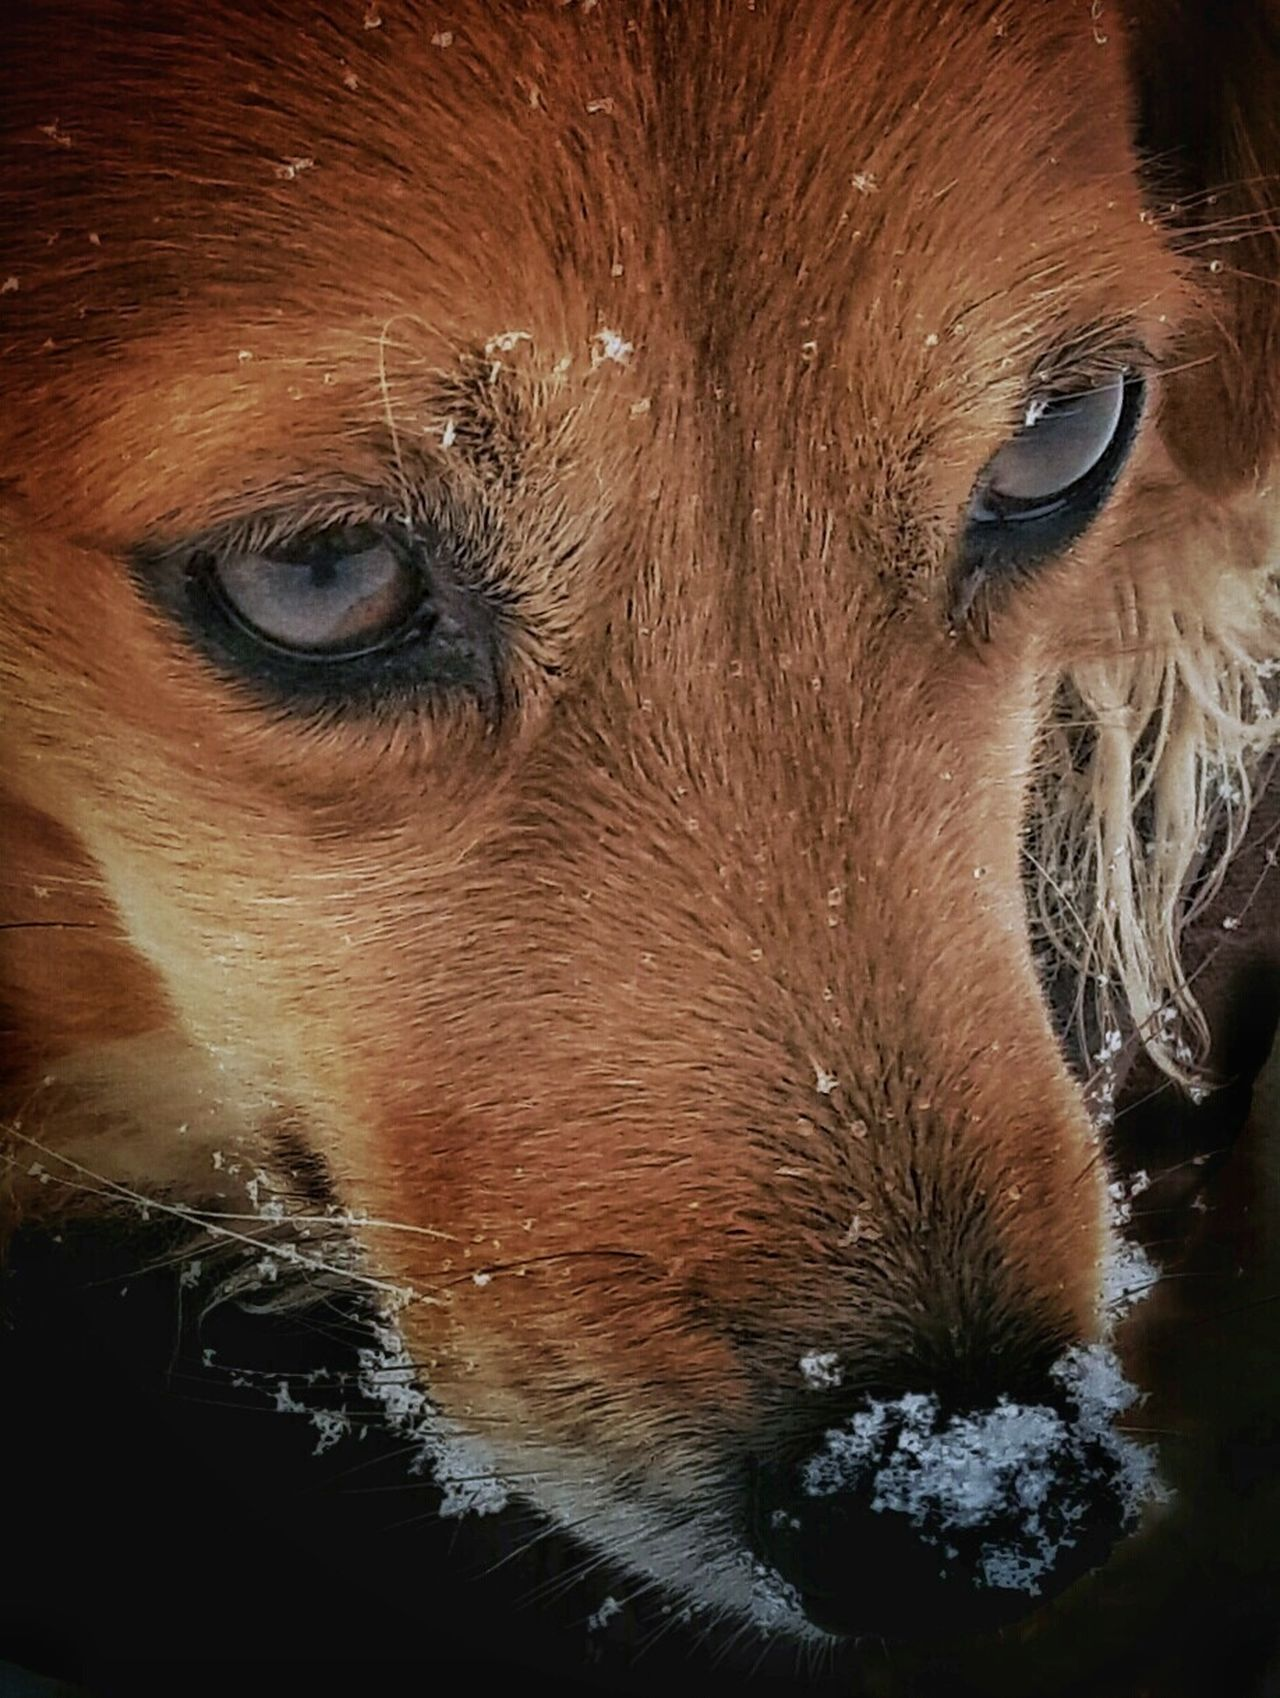 Animal Body Part Animal Eye Animal Nose AntiM Close-up Day Dog Dog And Snow Dog Close-up Dogs Nose Dogs Of EyeEm Dogs Portrait Domestic Animals Full Frame Mammal My Dogs Are Cooler Than Your Kids No People One Animal Outdoors Pets Portrait Snow Dog SweetSally Pet Portraits